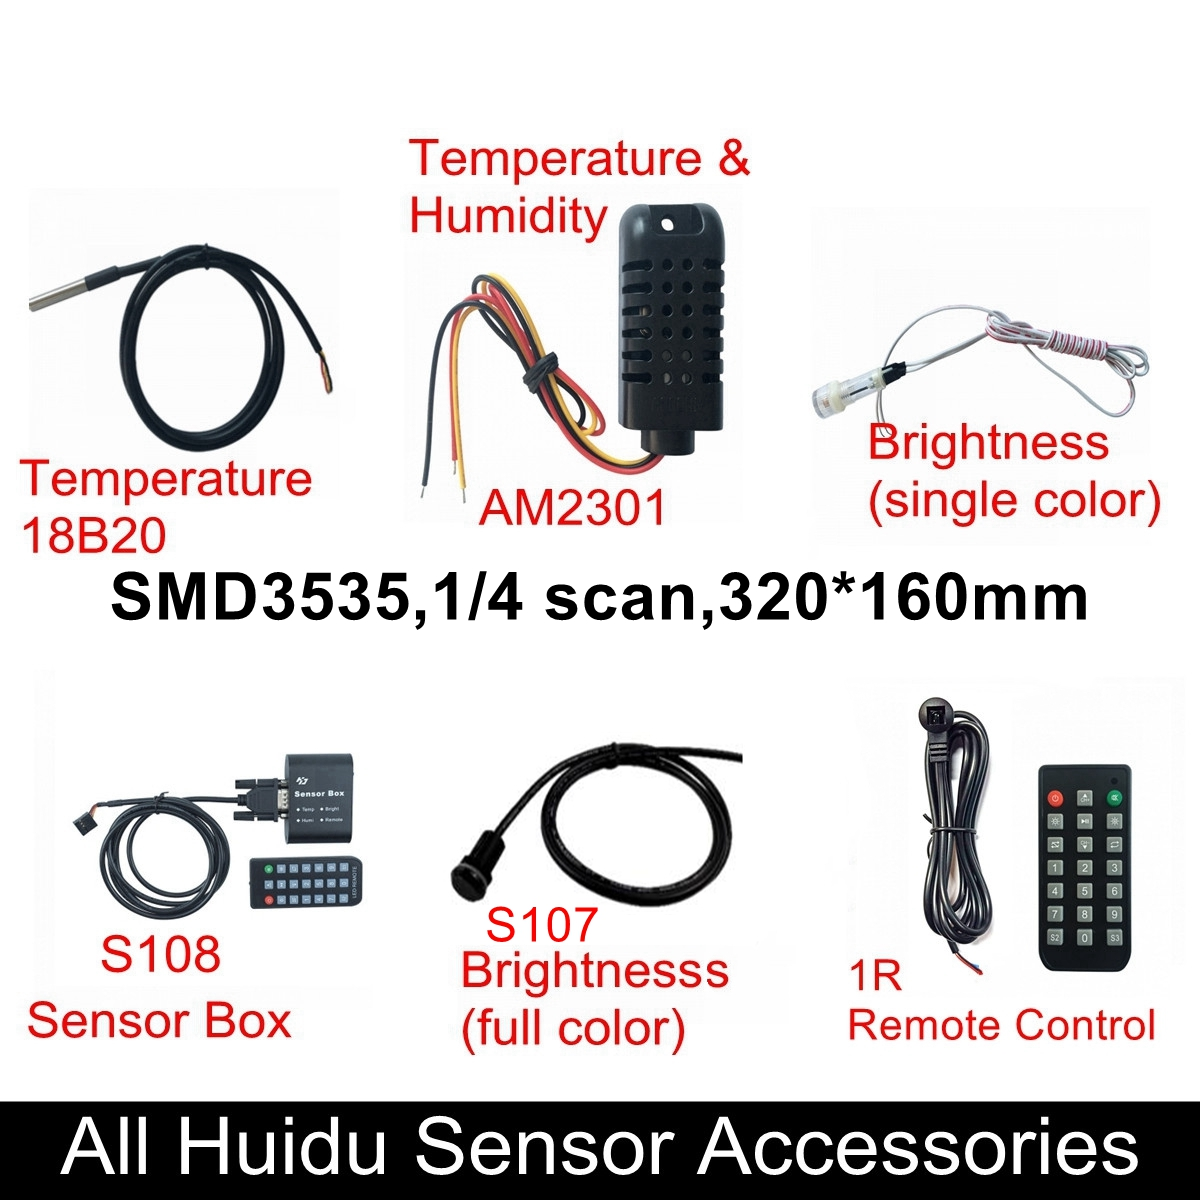 Huidu Sensors Temperature 18B20 Temperature And Humidity AM2301 Single RGB Brightness S107 S108 Box 1R Remote